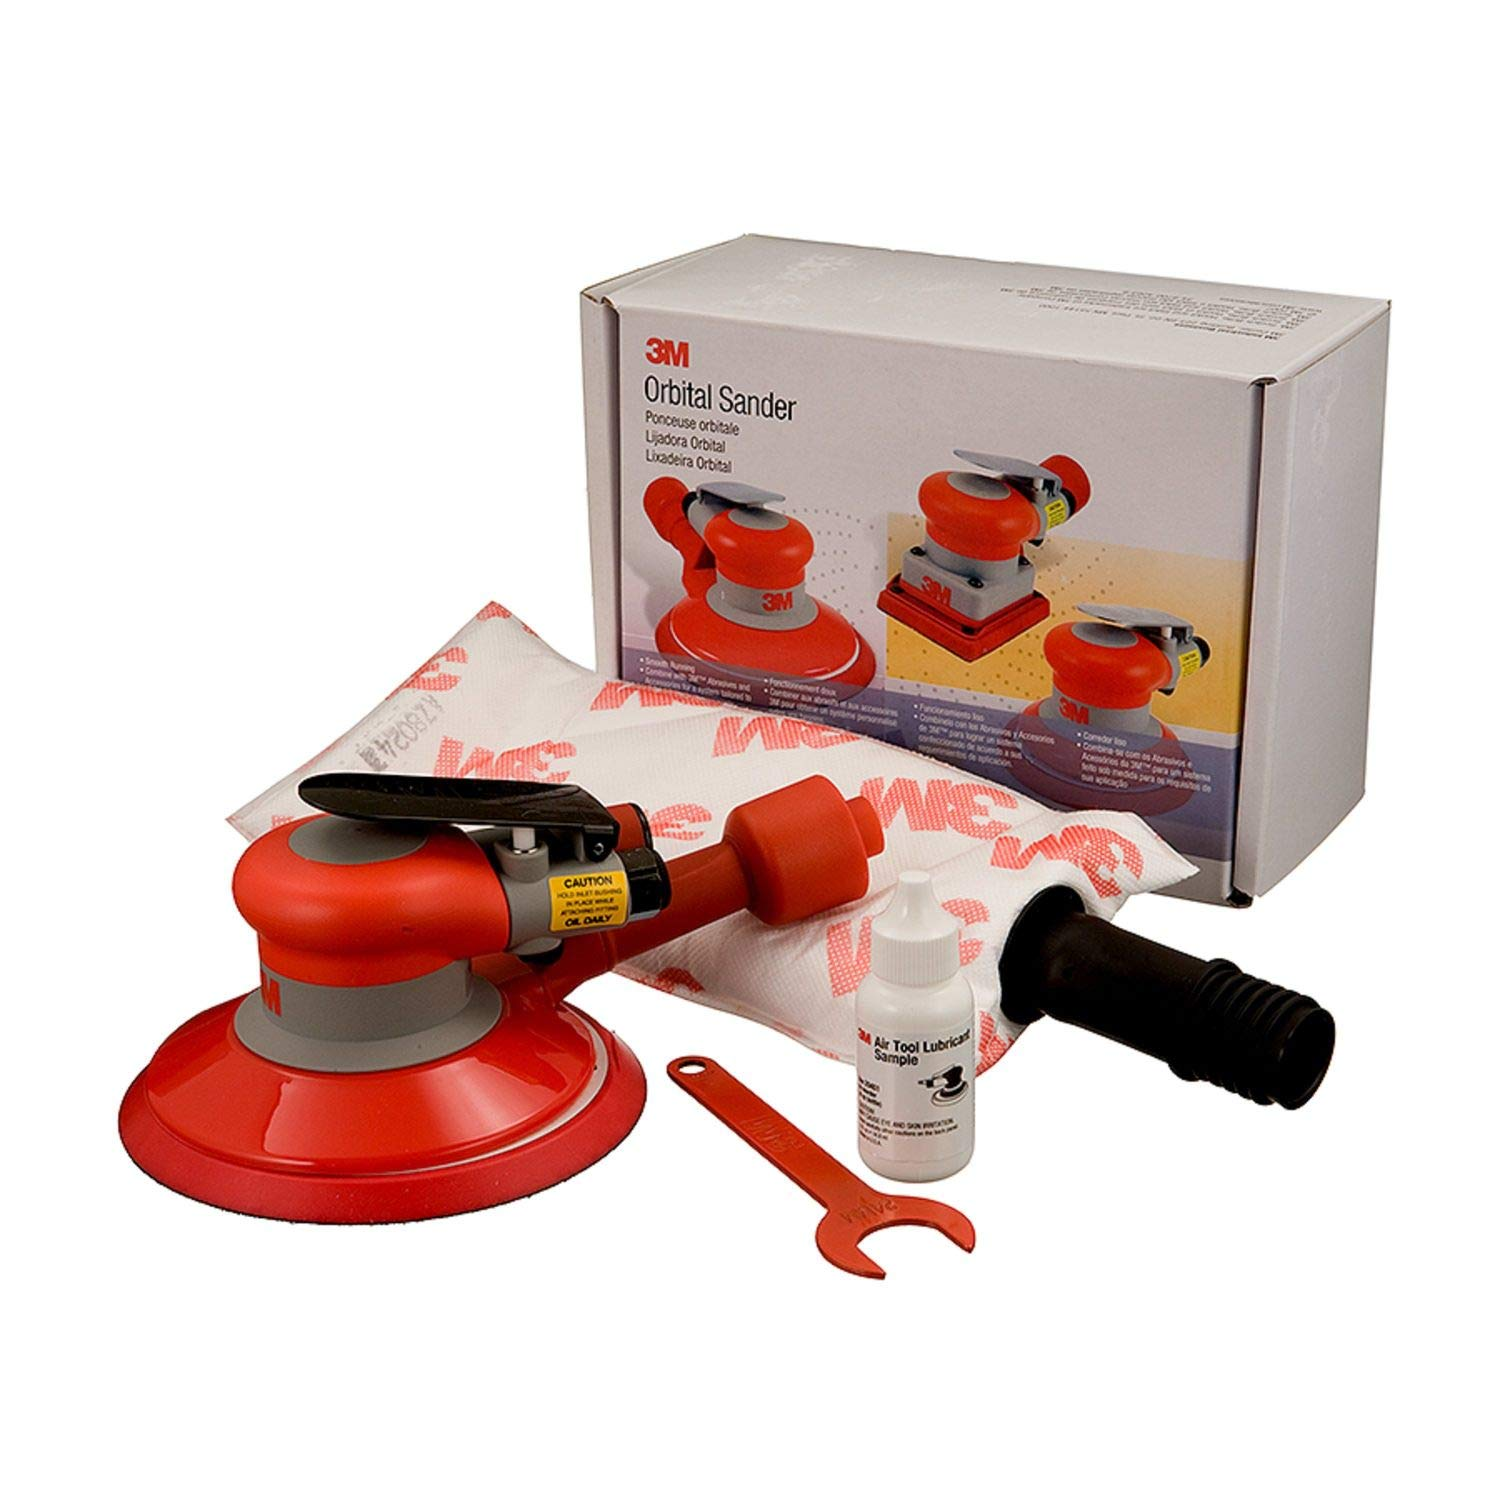 3M Self-Generated Vacuum Random Orbital Sander 20208, 6 in, 5/16 in Orbit, 1 per case